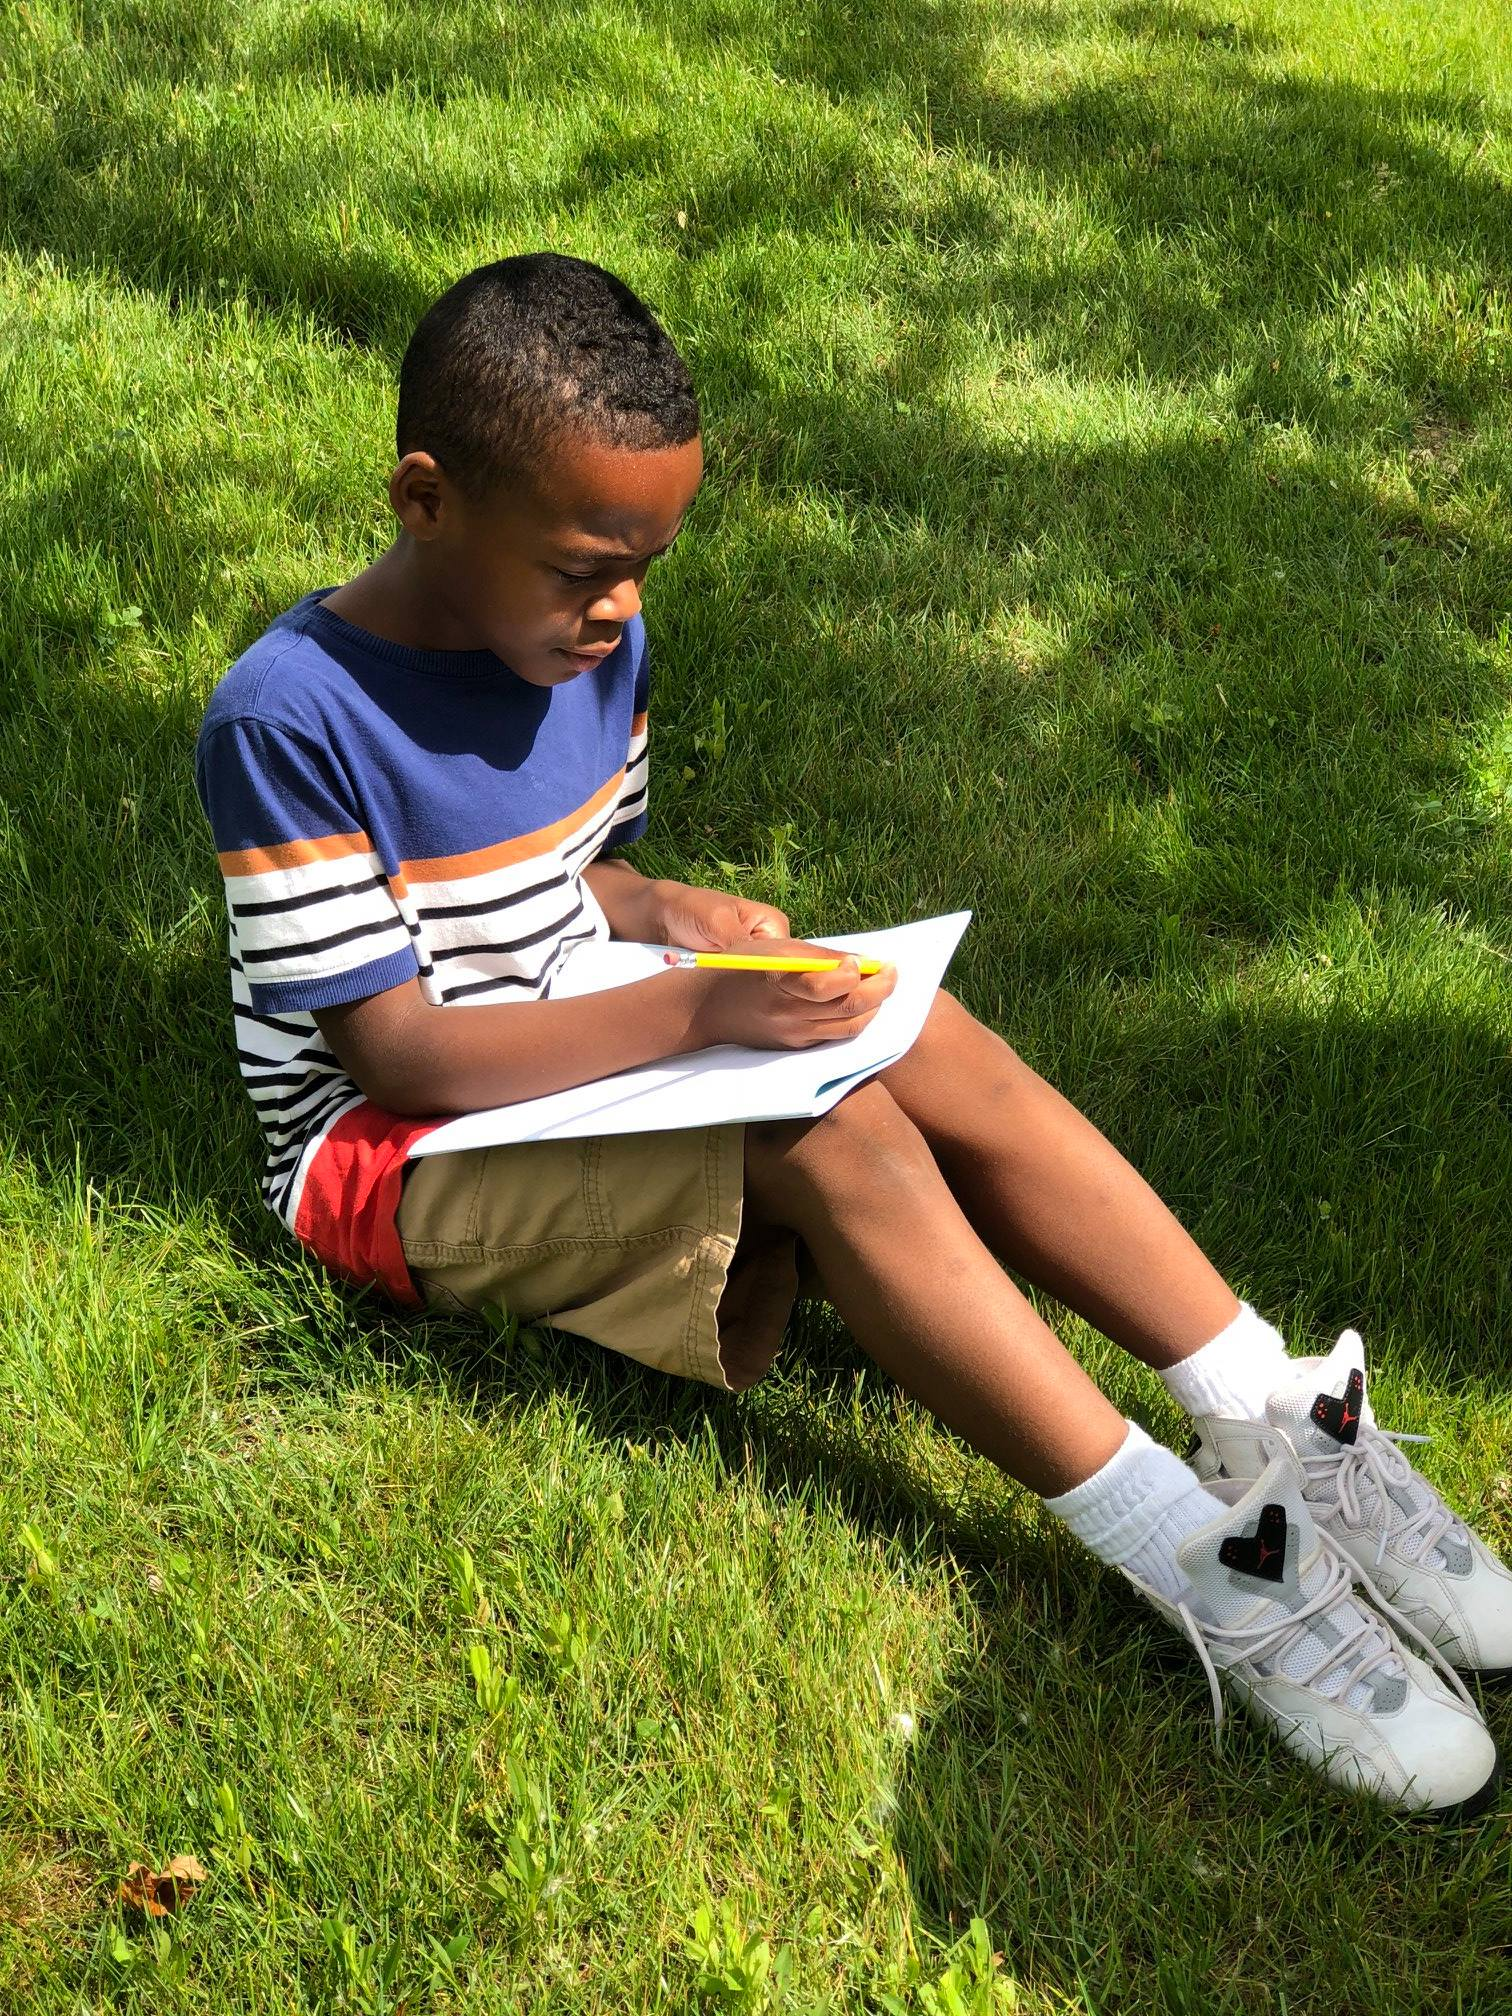 A KIPPster writing observations about the environment